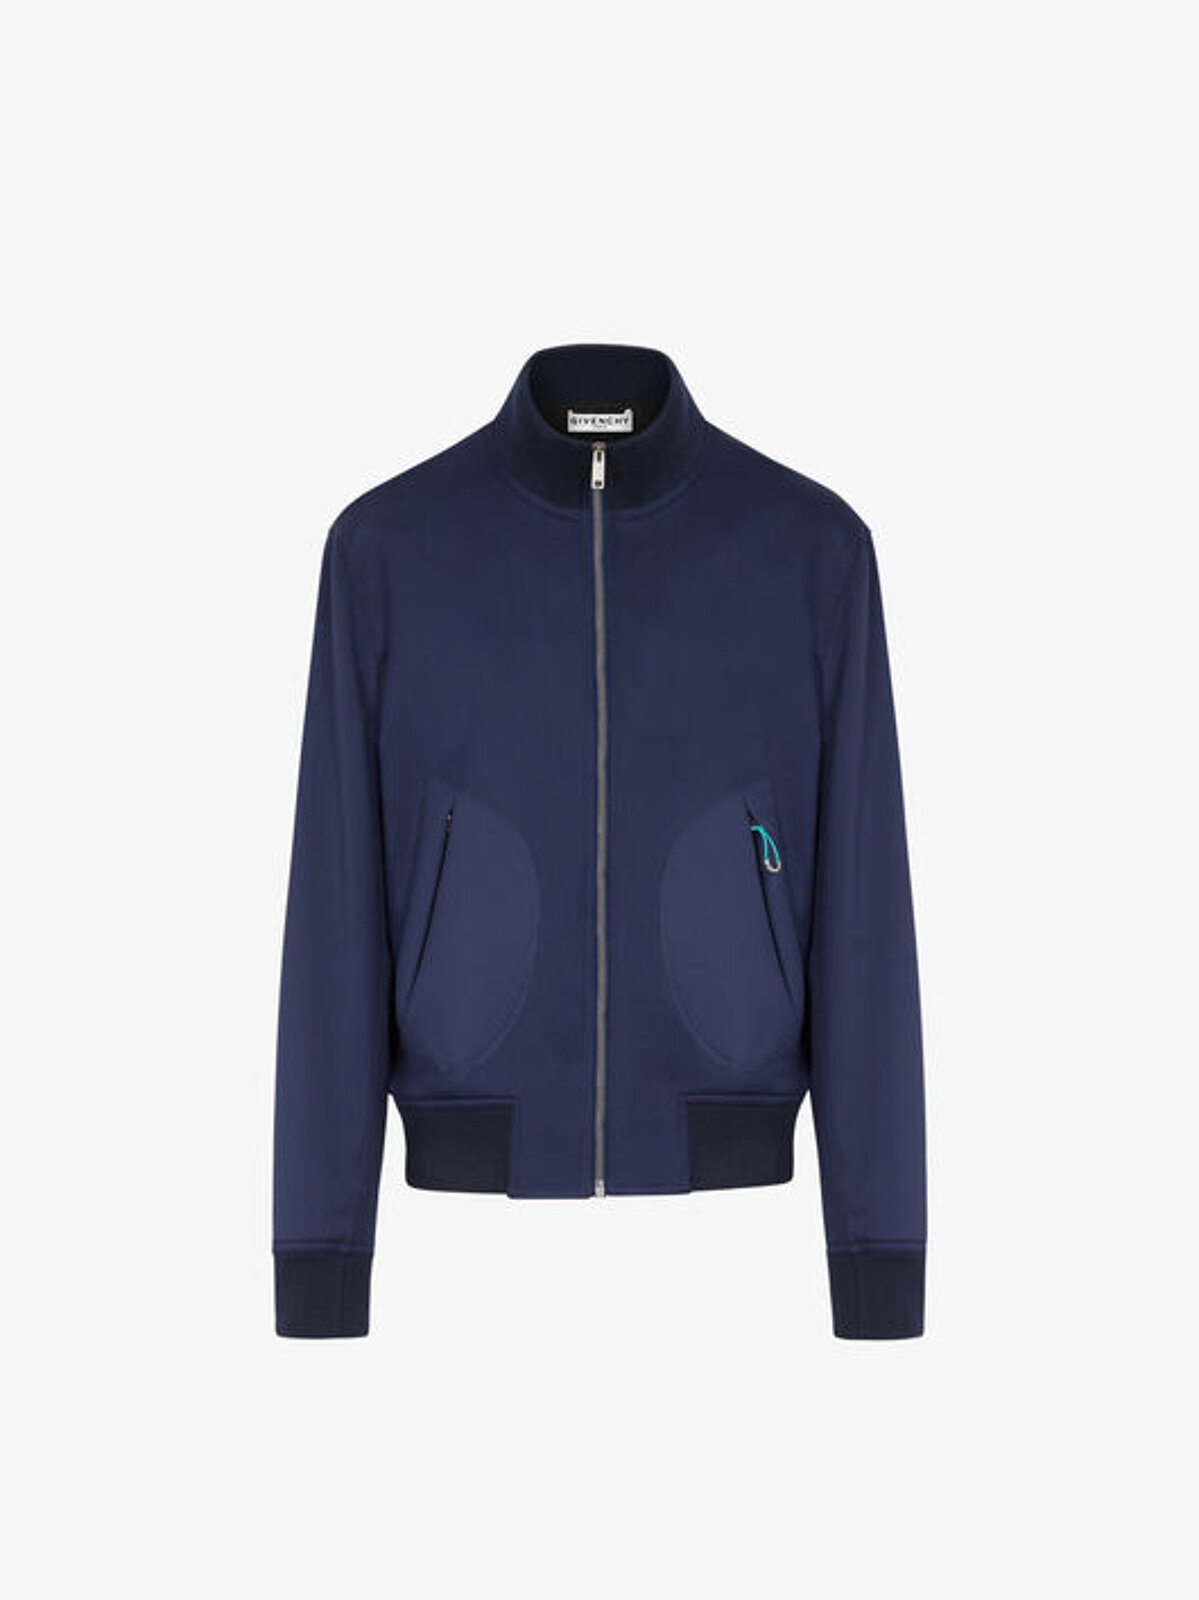 Super 110s wool bomber jacket - Givenchy